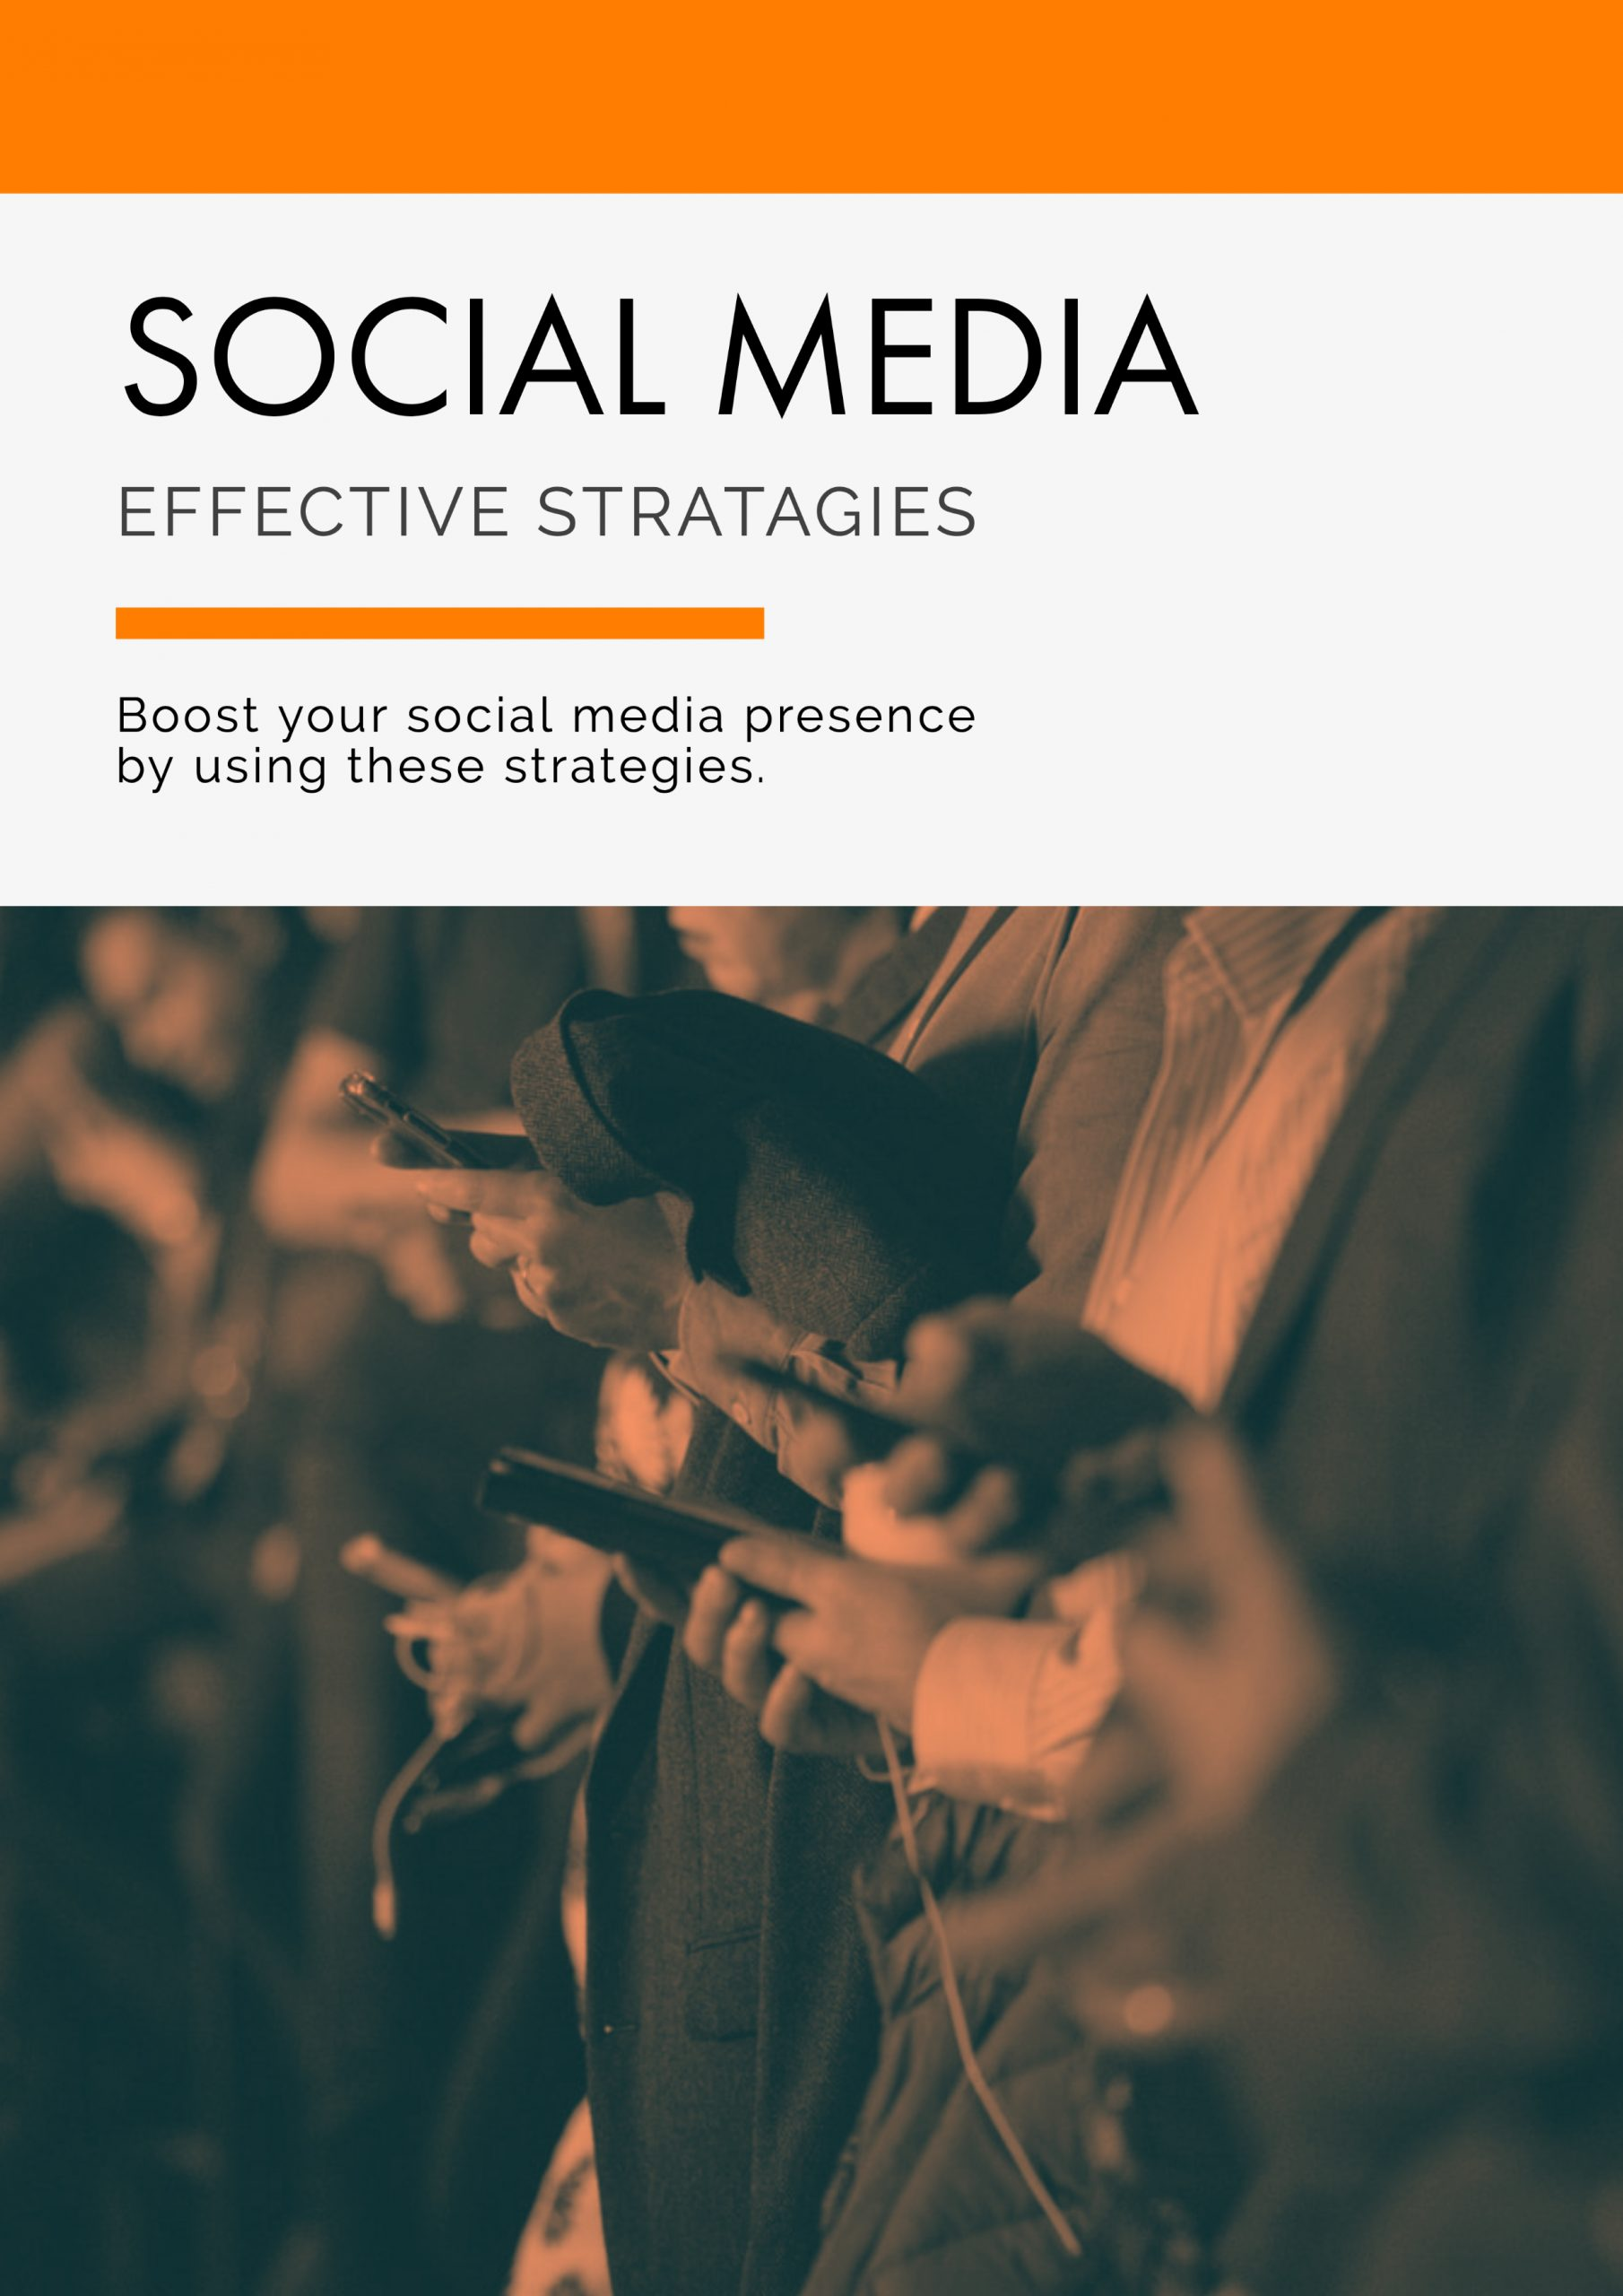 BOOST Your Social Media Presence   Networking with Purpose